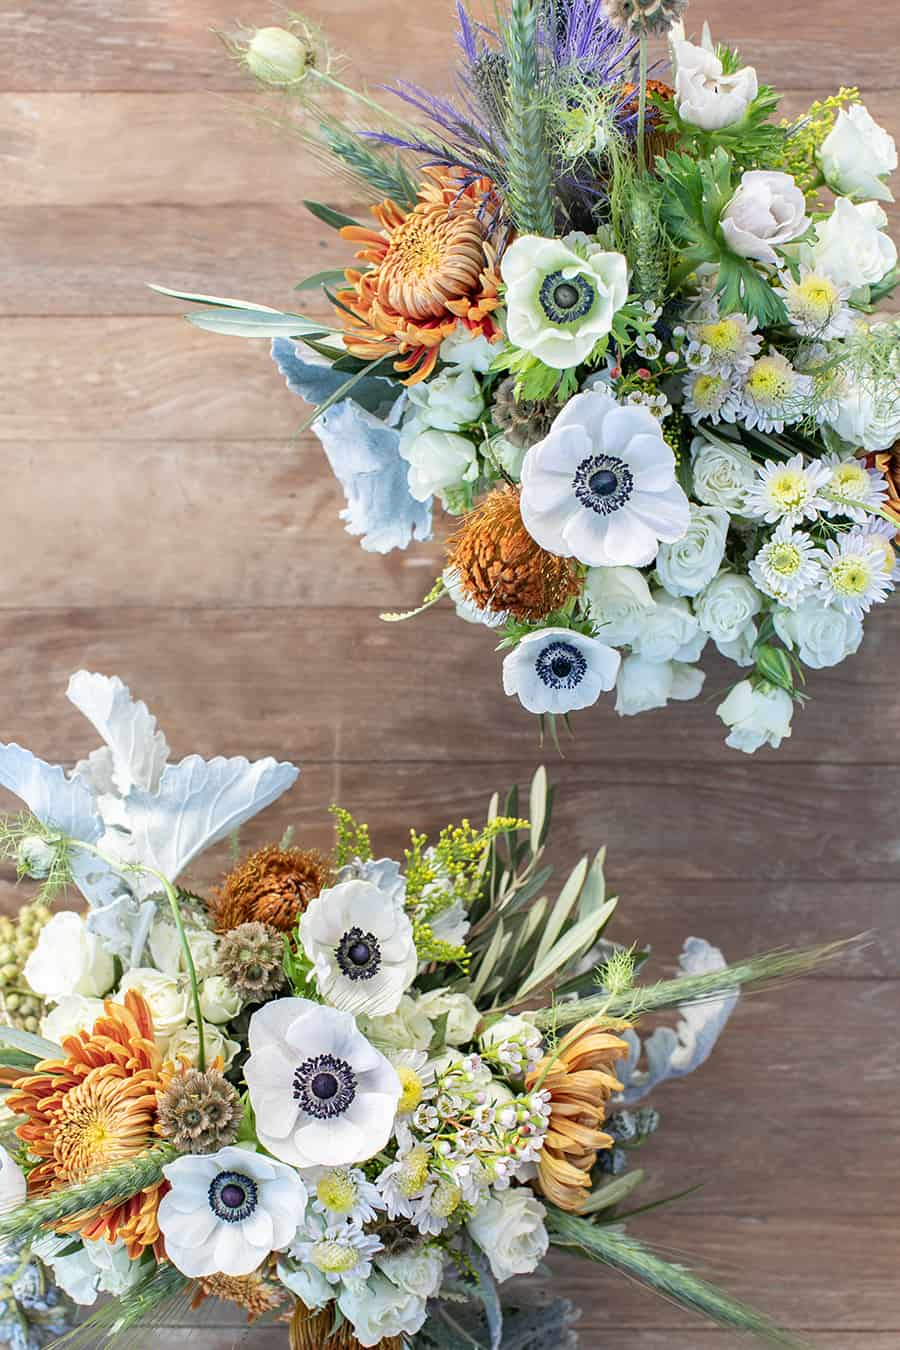 pretty barnyard flowers on wooden table